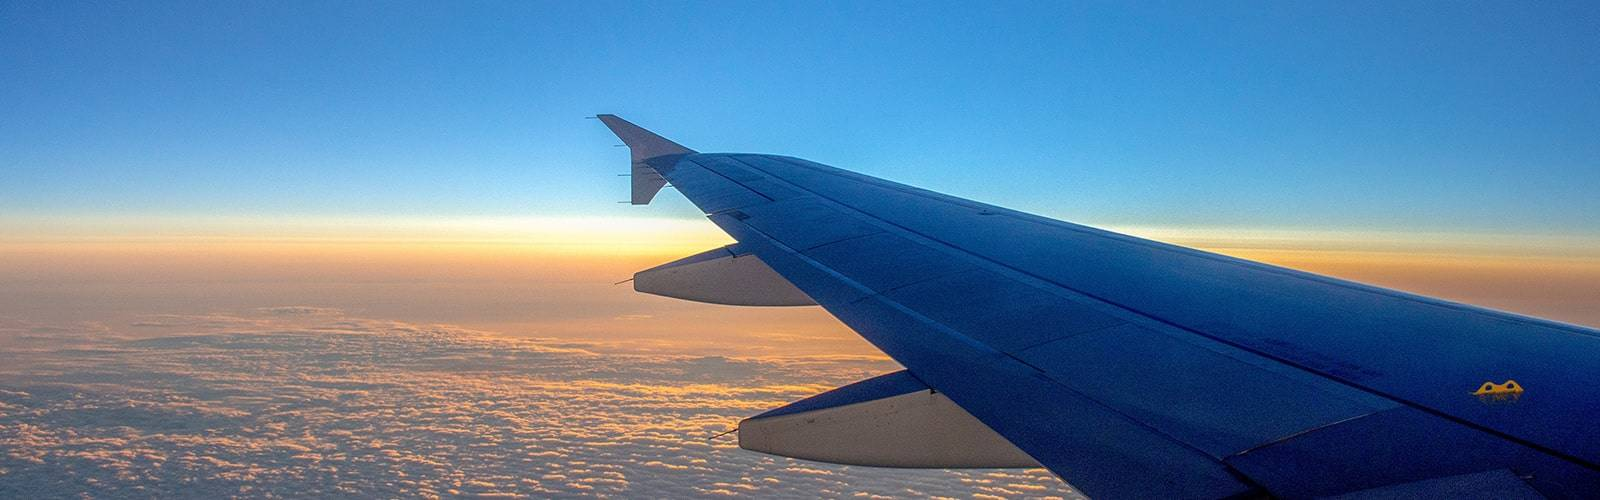 wing of an aircraft with sunset